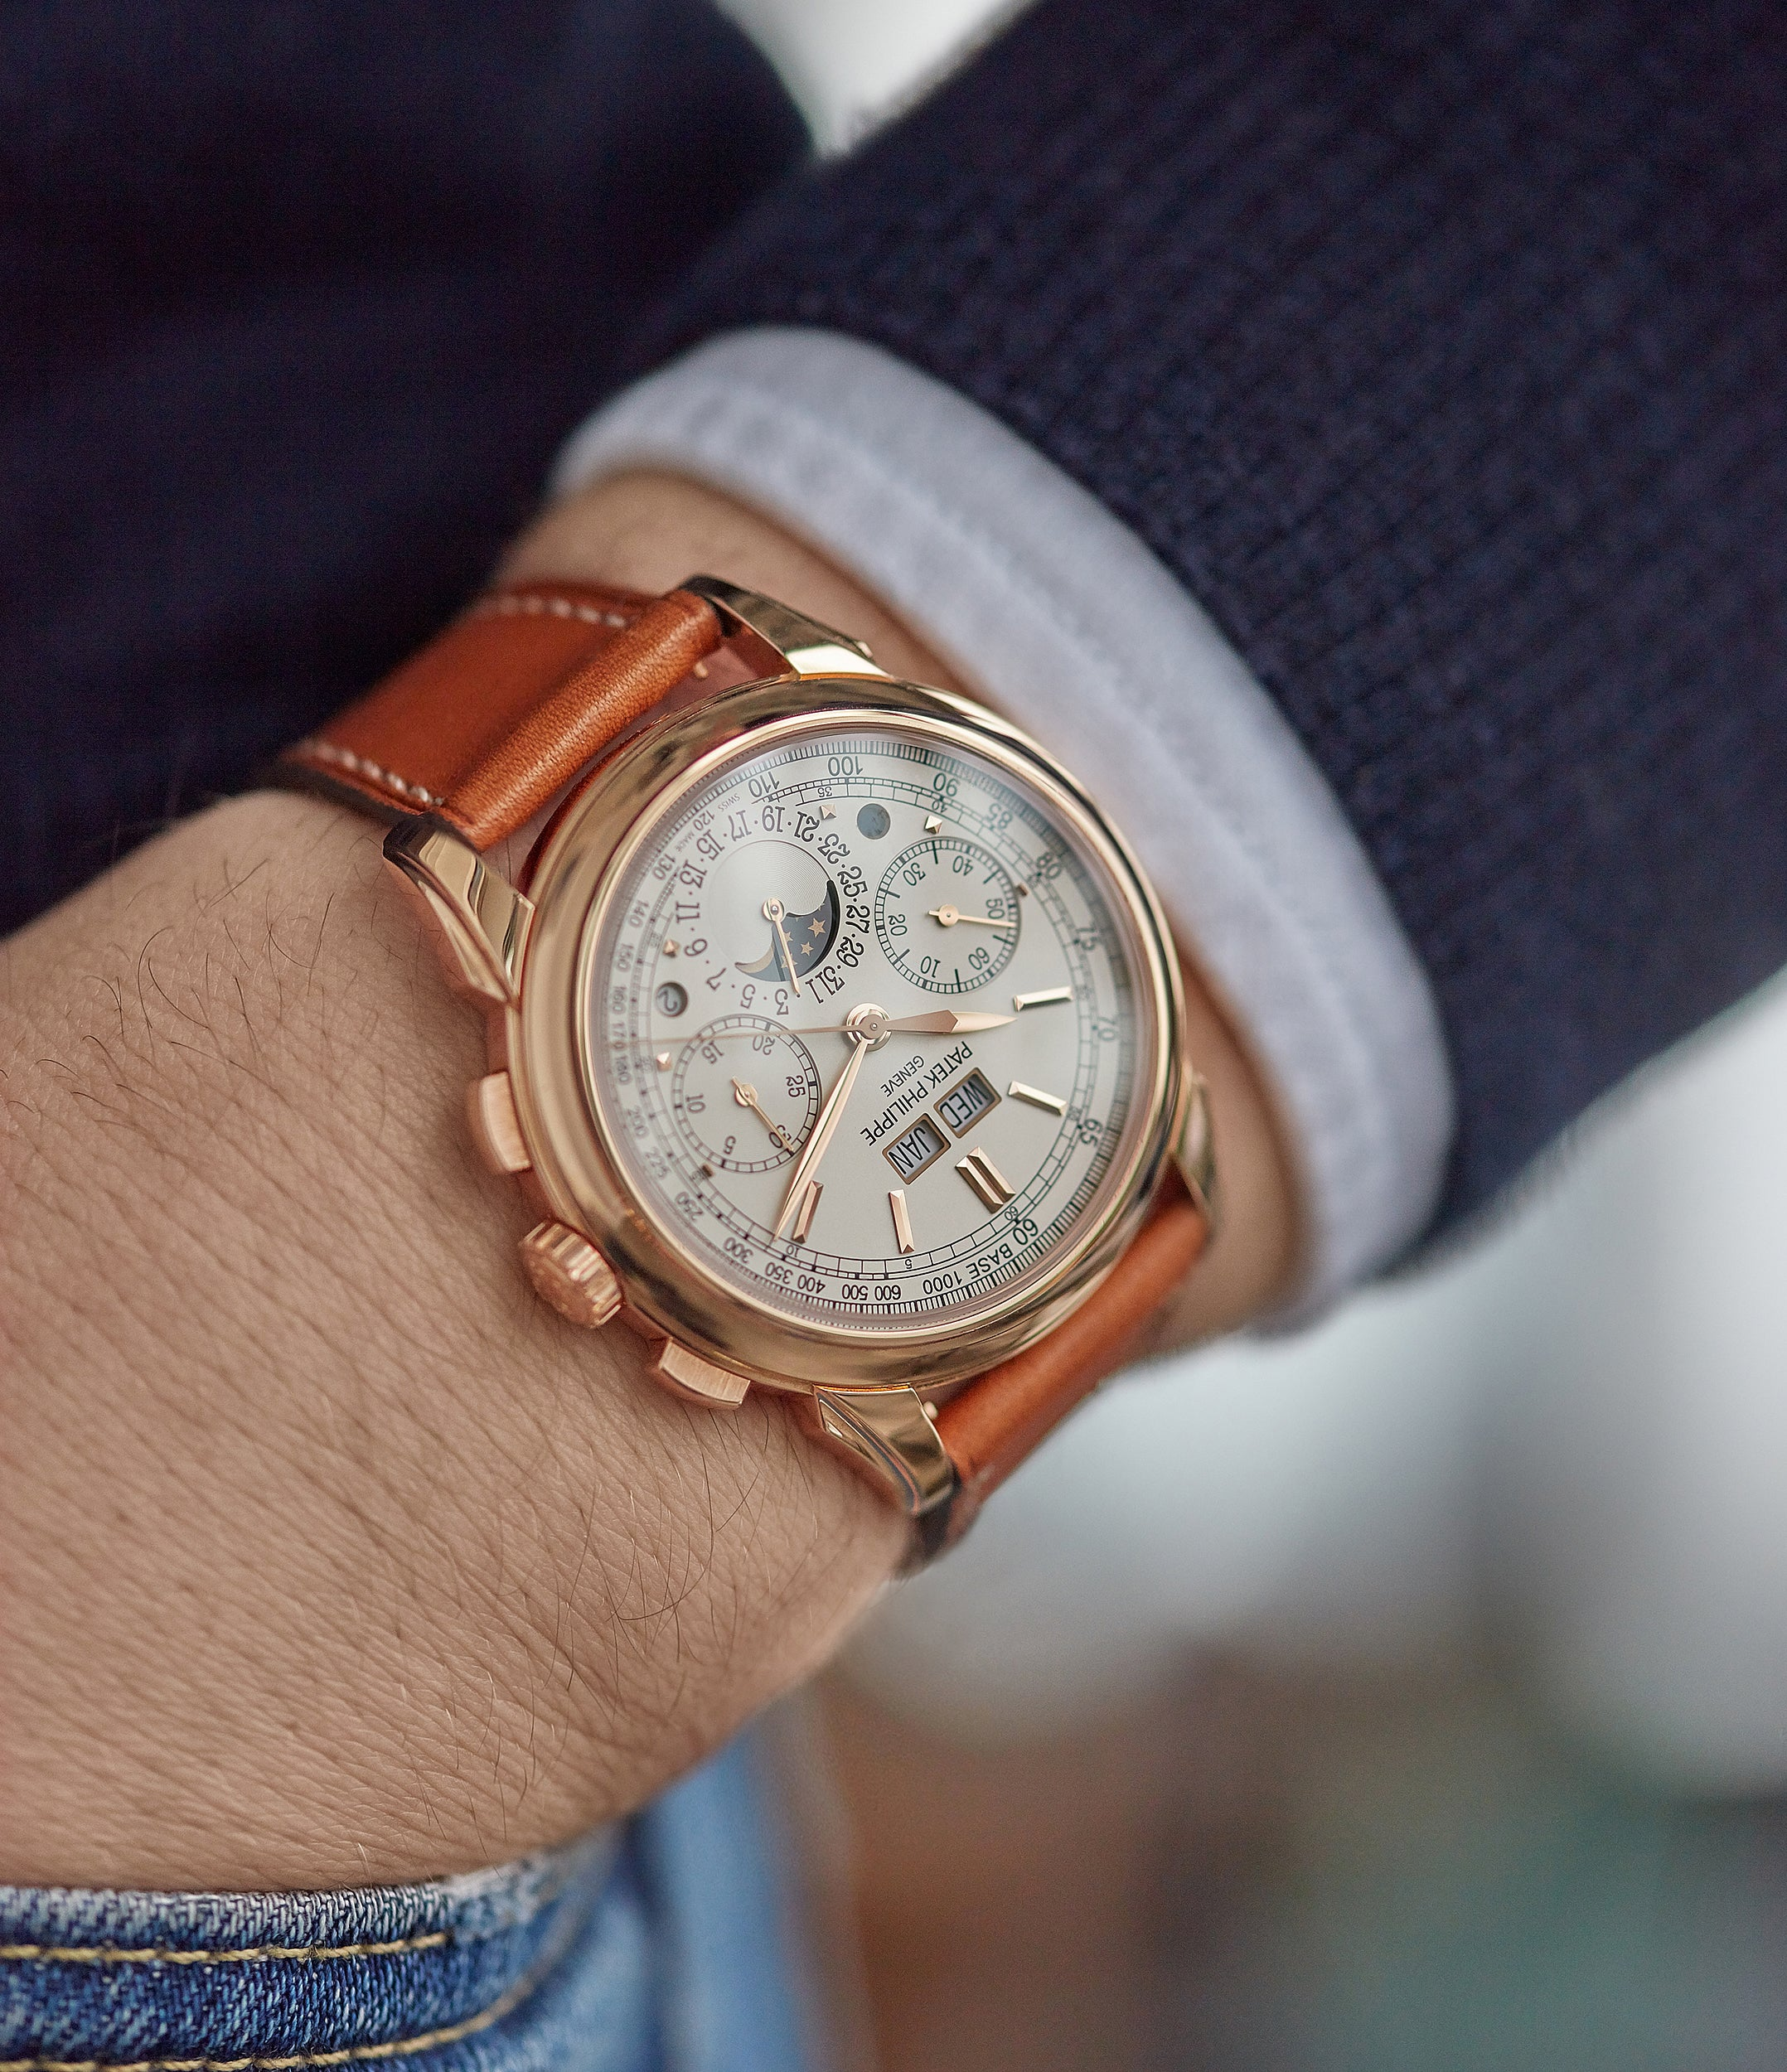 Patek Philippe Grand Complication Perpetual Calendar Chronograph 5270 rose gold dress watch for sale online at A Collected Man London UK specialist of rare watches